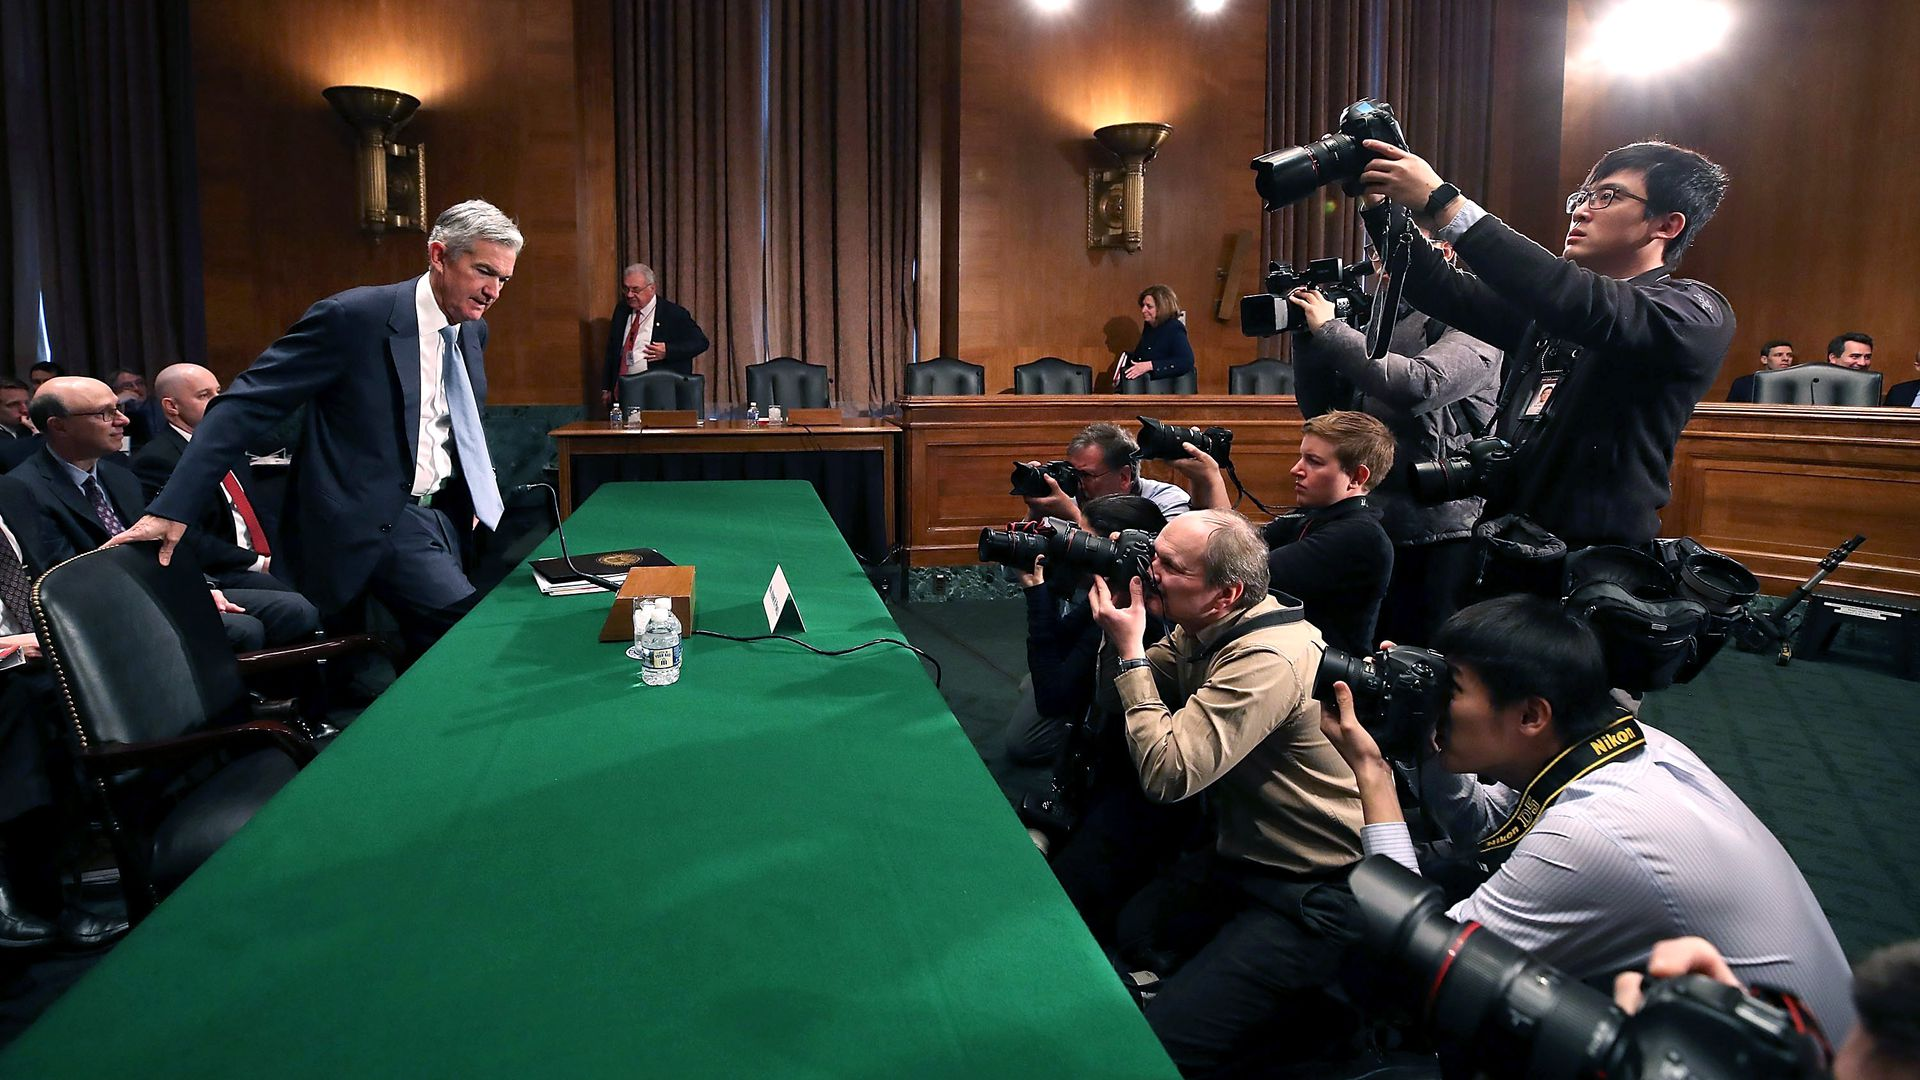 Fed Chair Jerome Powell sits down at a large green table as photographers snap pictures.